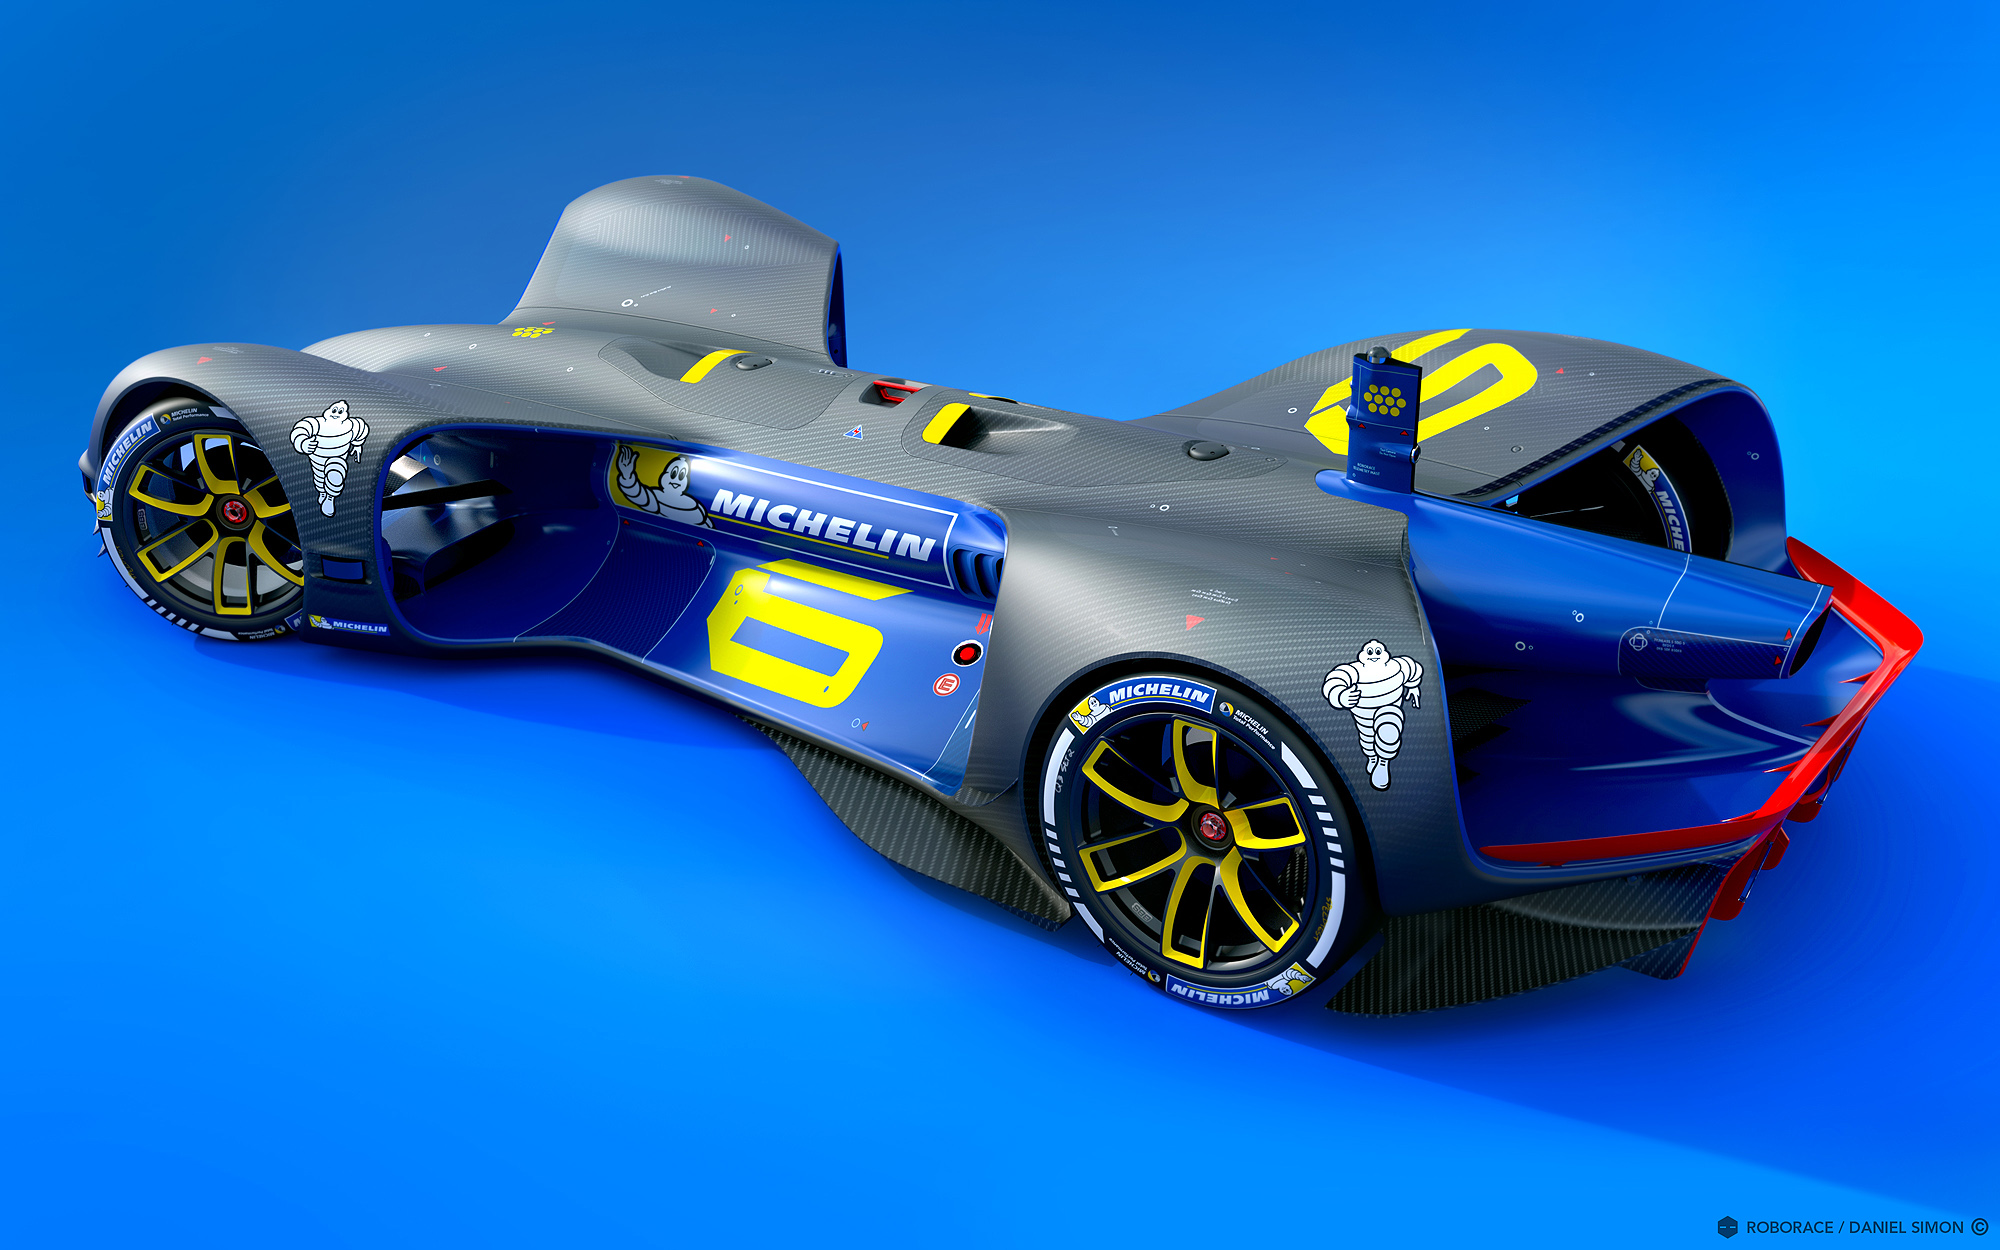 Roborace has named Michelin as the official tire partner for the event.